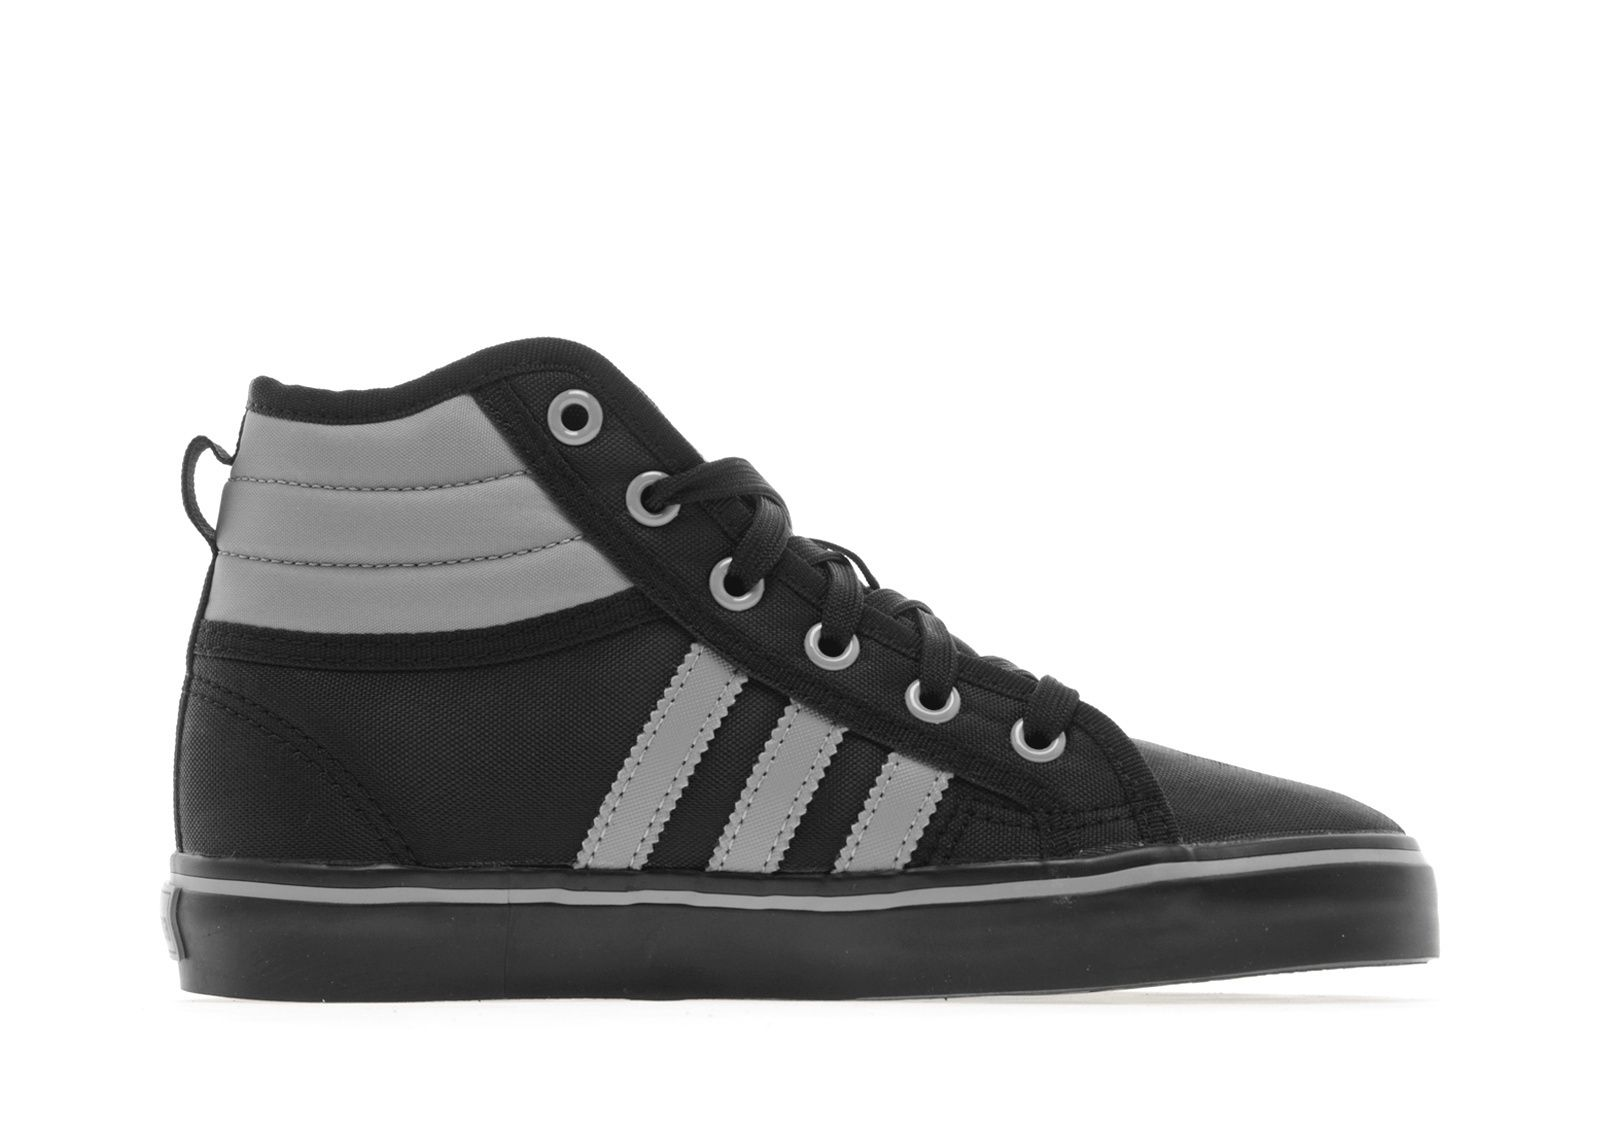 adidas Originals Nizza Hi Childrens